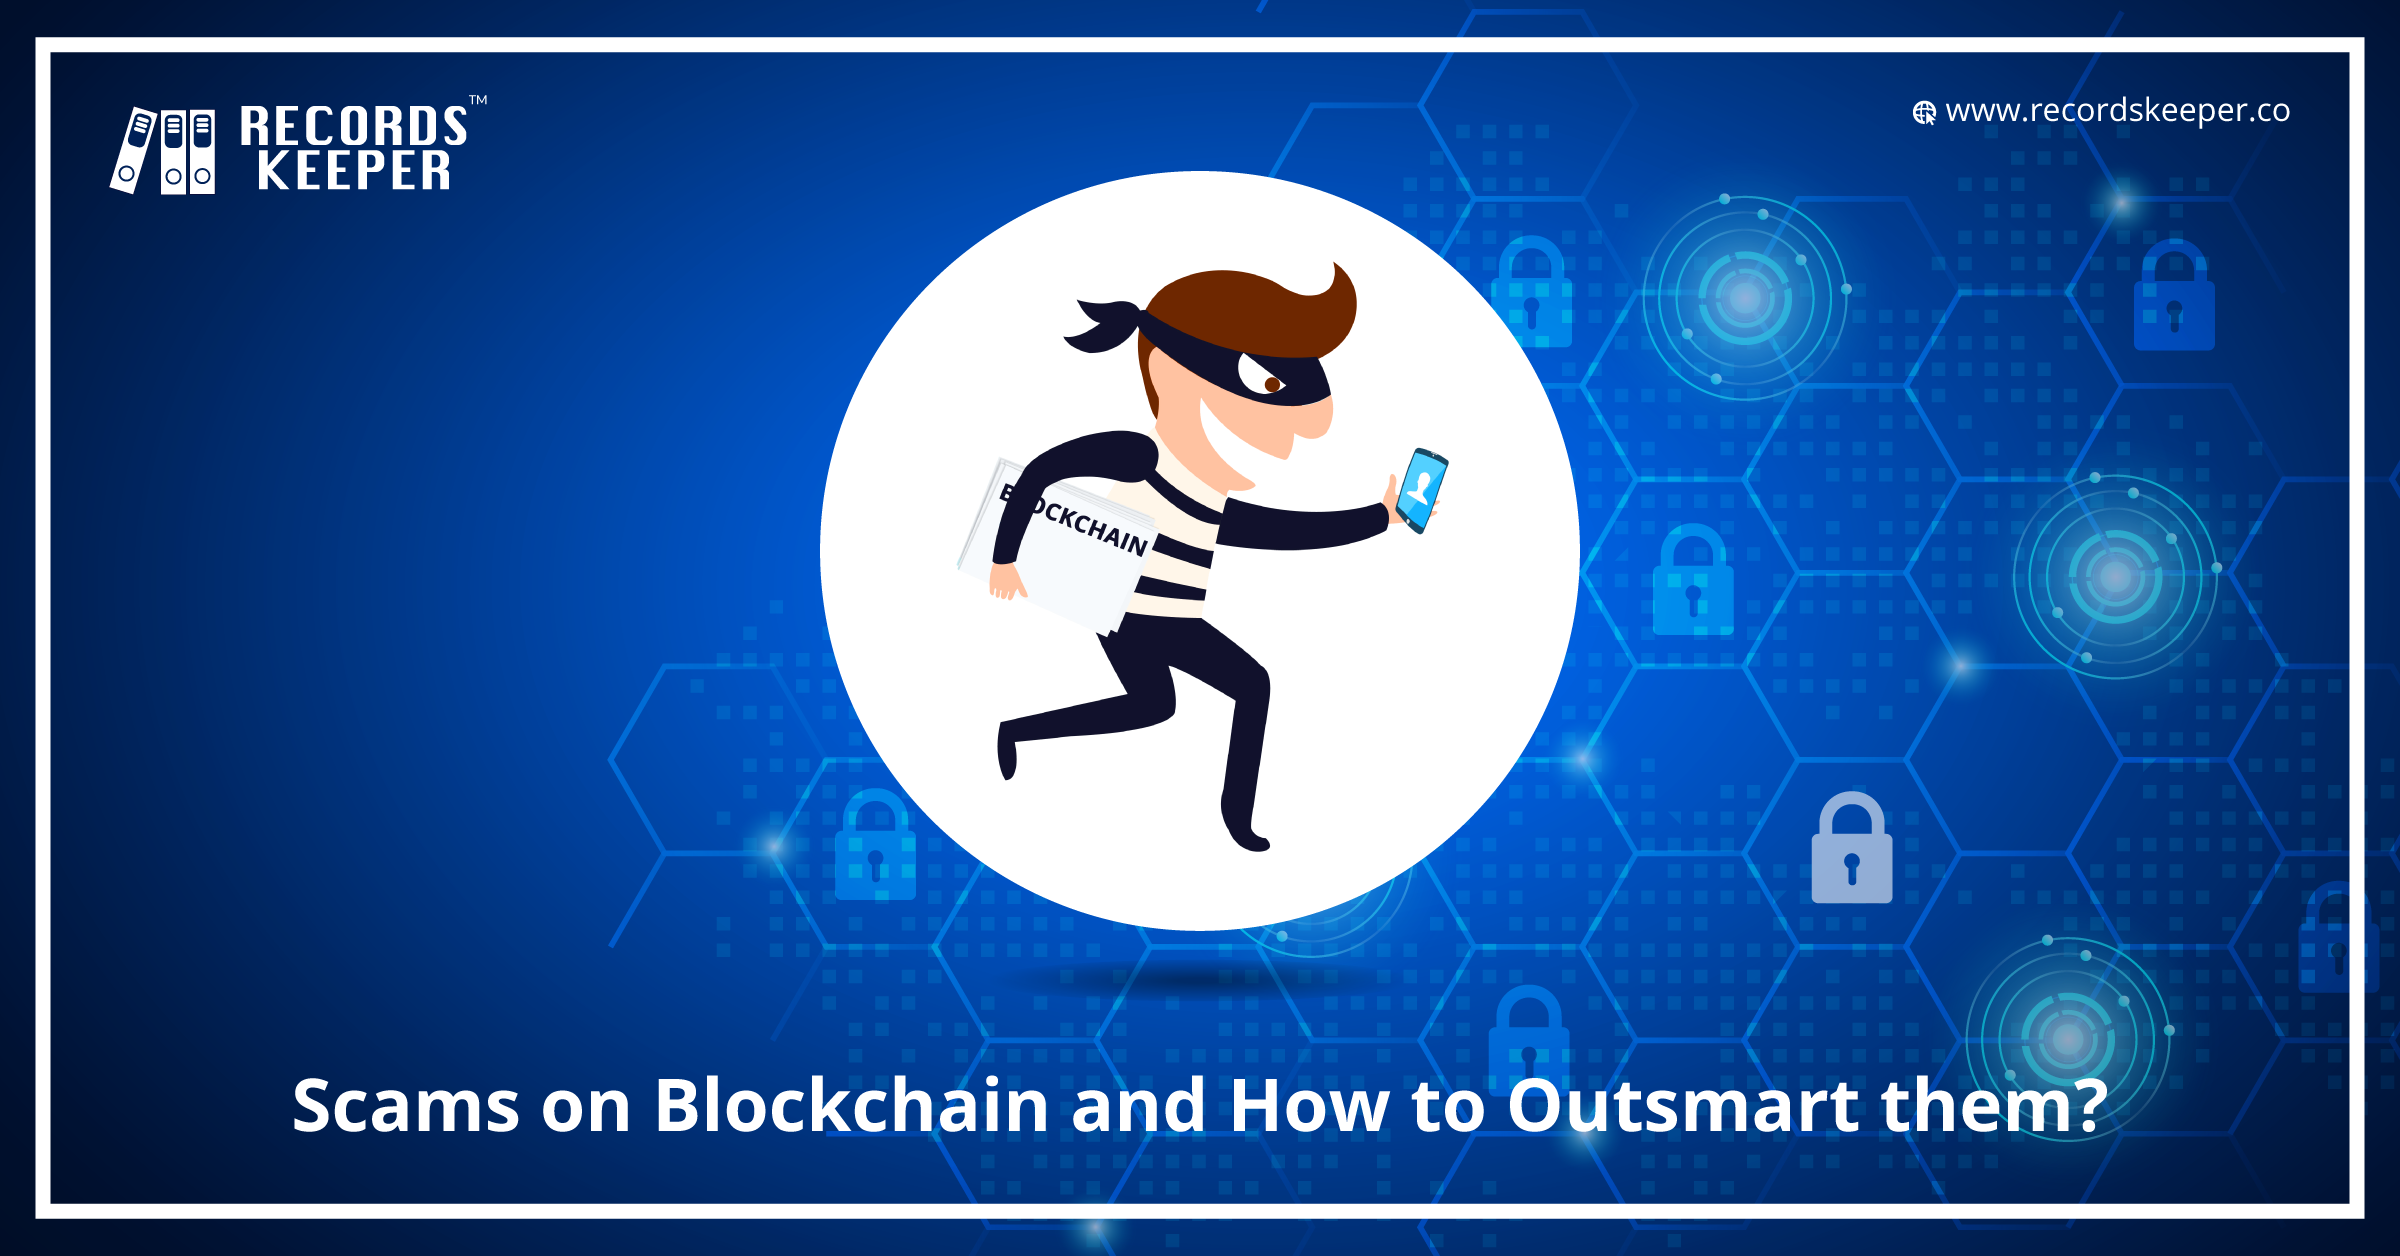 Scams on Blockchain and How to Outsmart Them